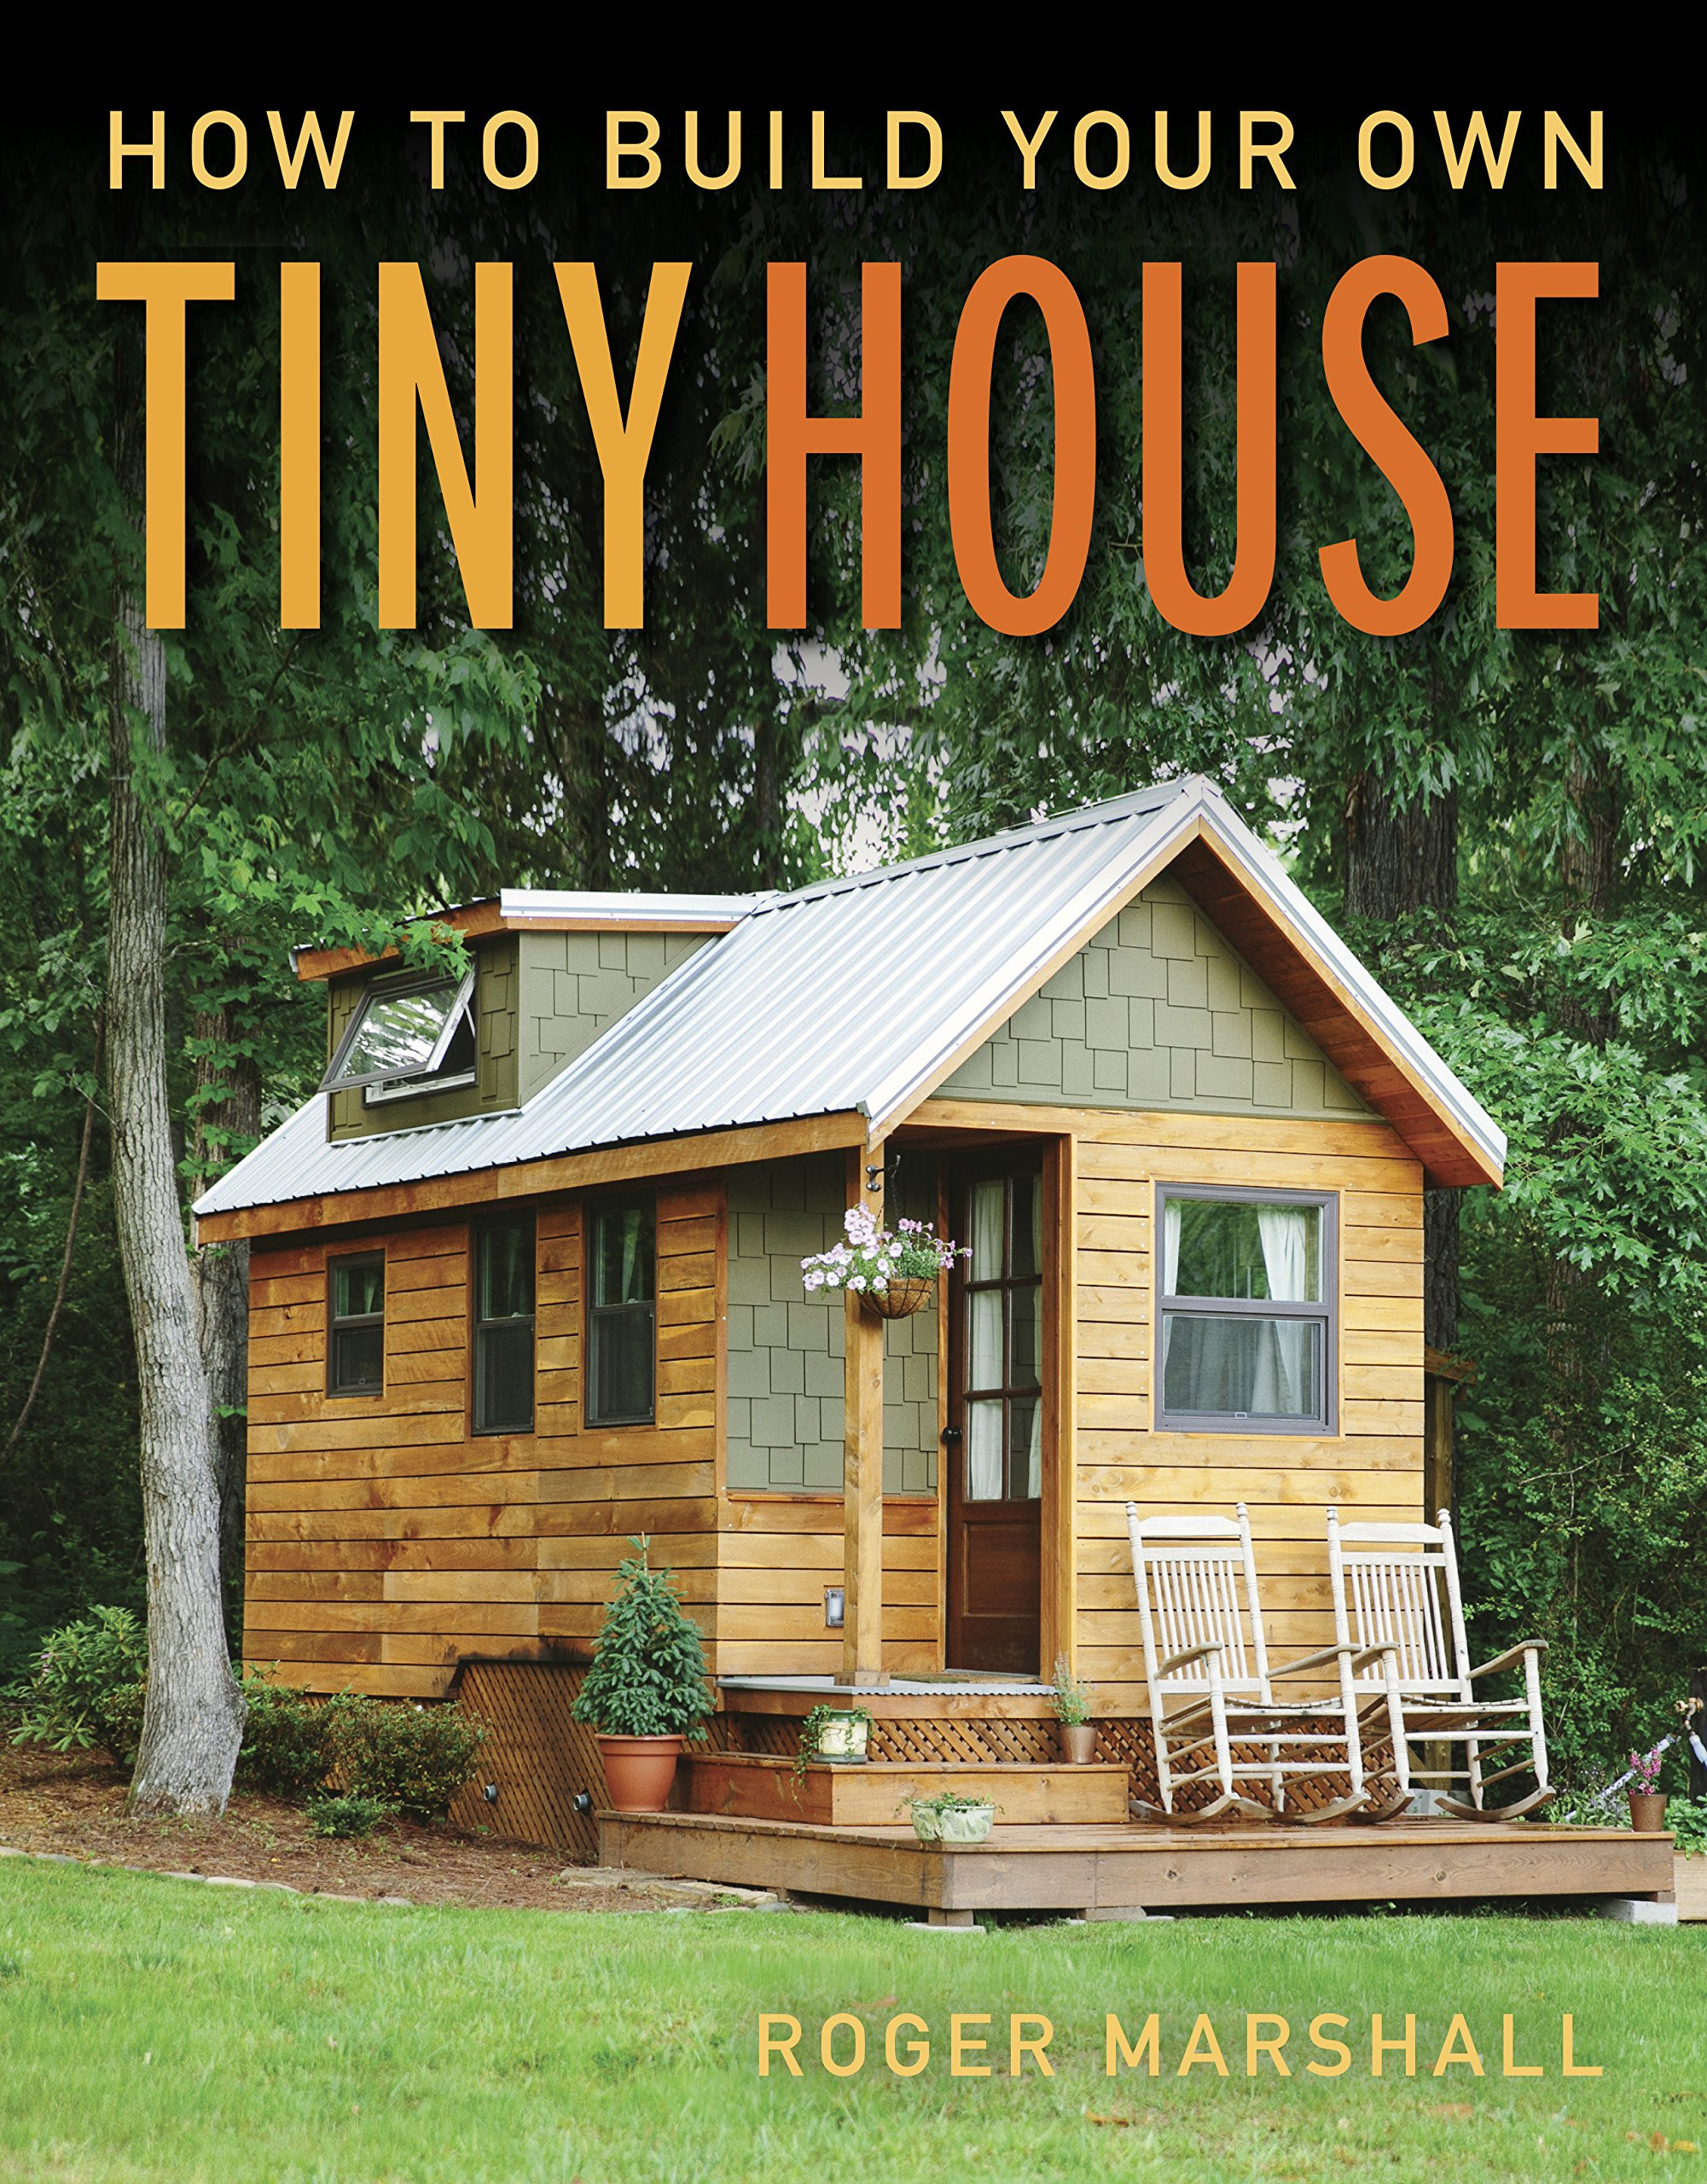 Build Your Own Small House Plans Awesome How to Build Your Own Tiny House Roger Marshall